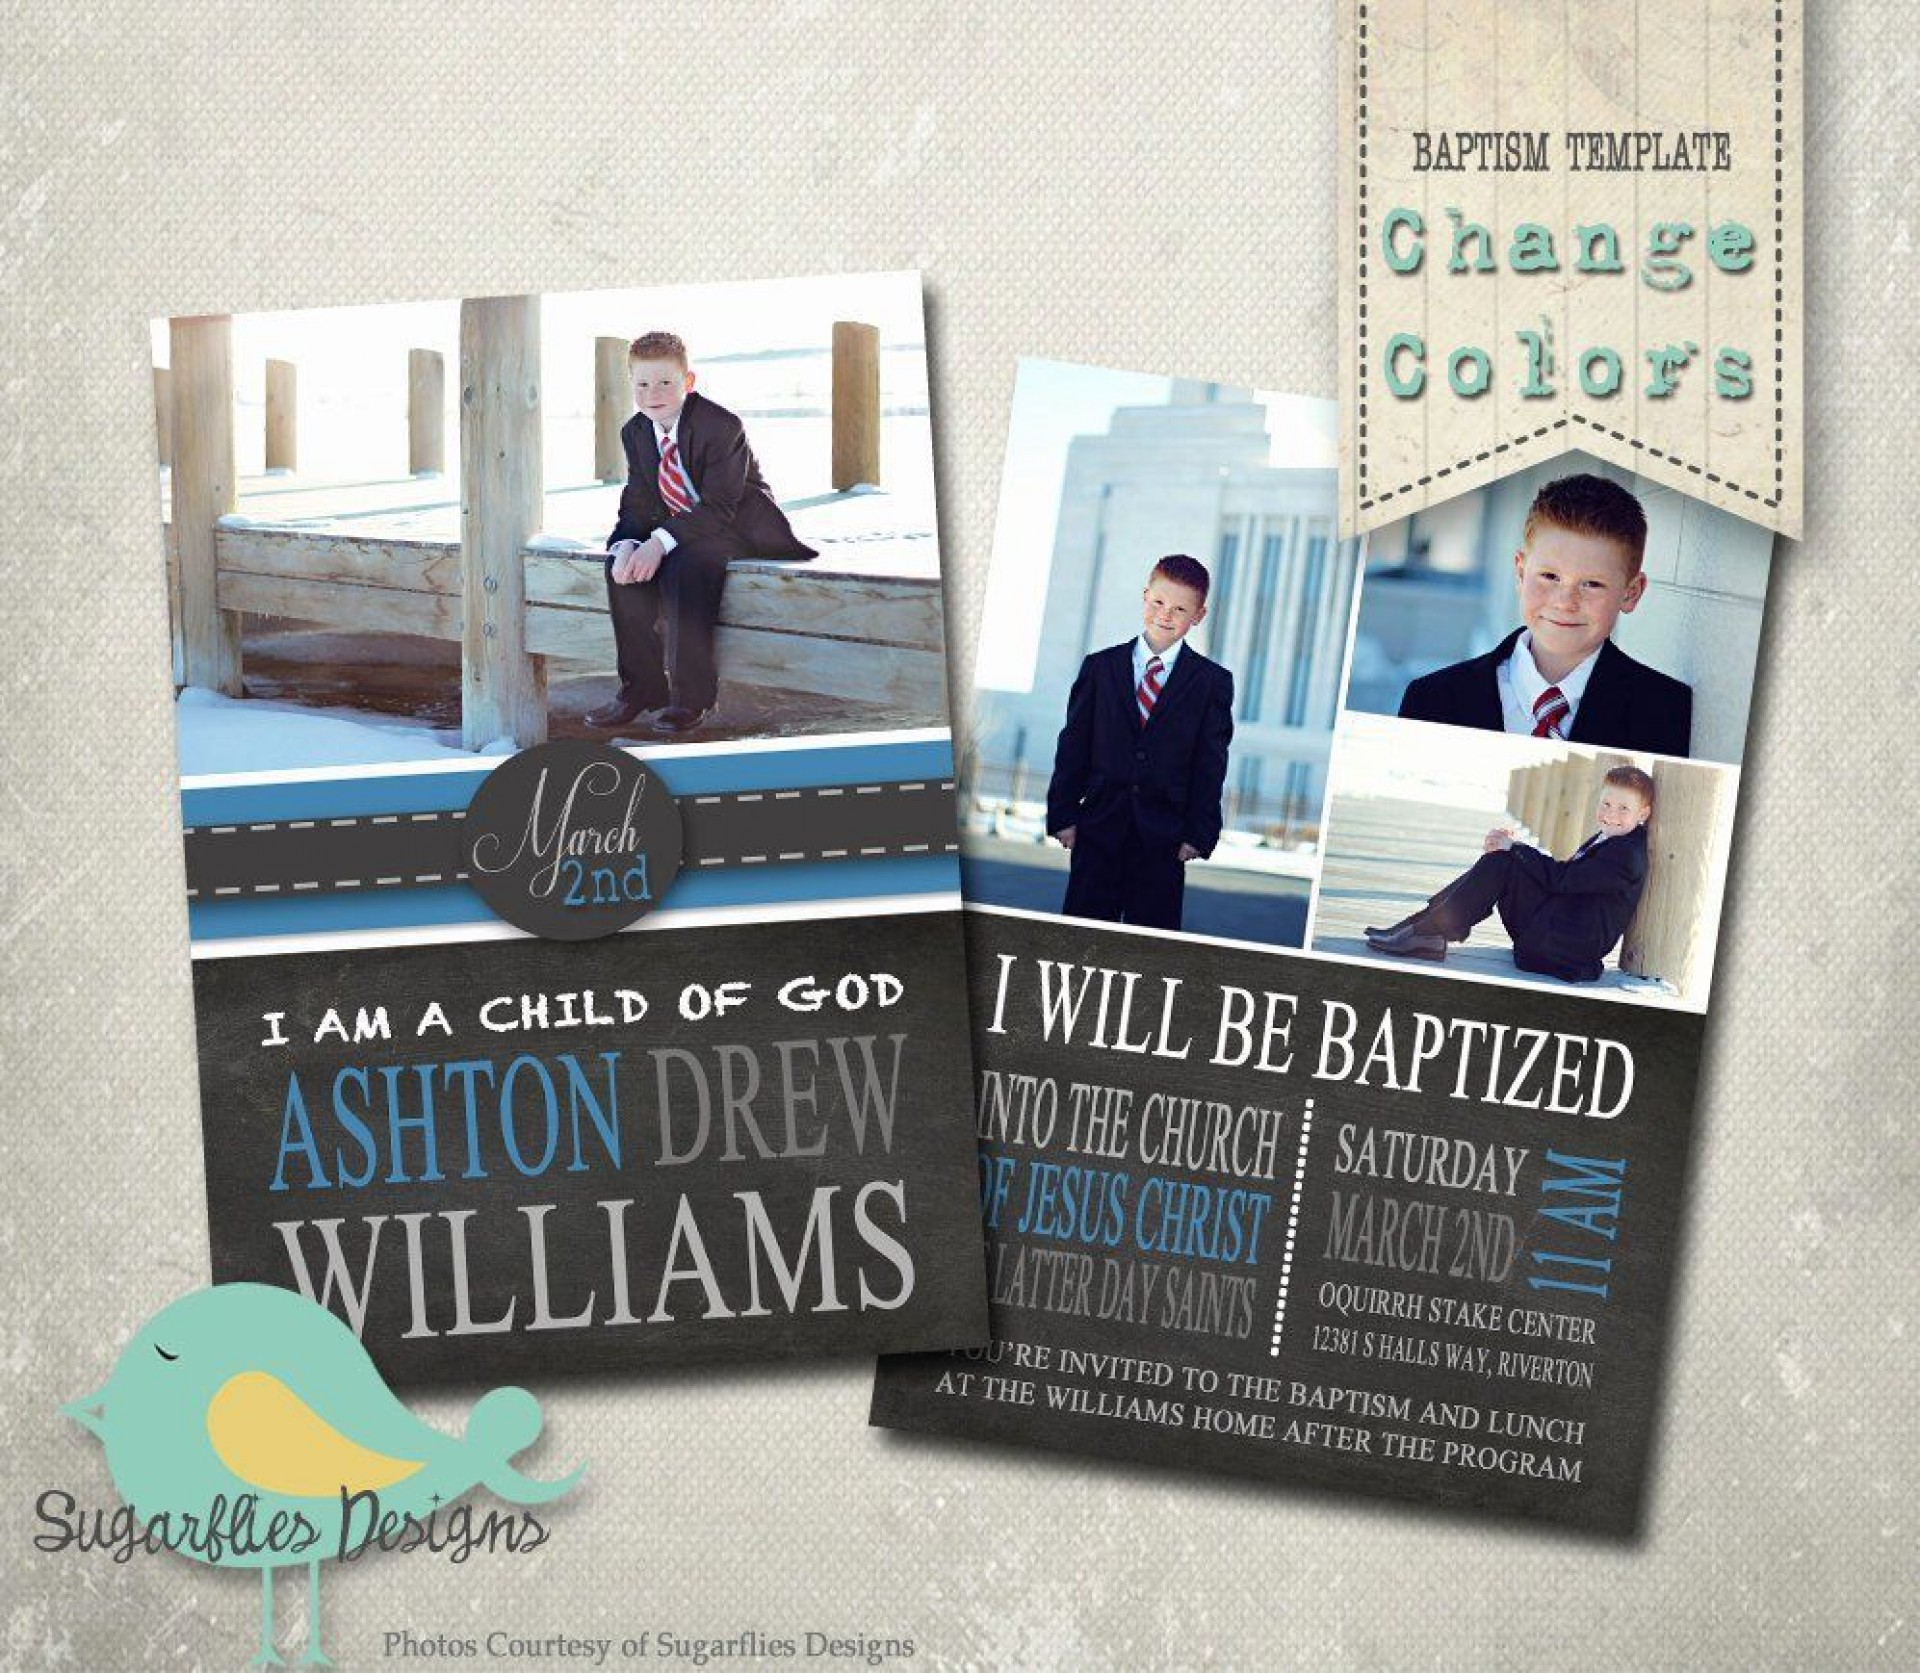 006 Simple Ld Baptism Invitation Template High Def 1920